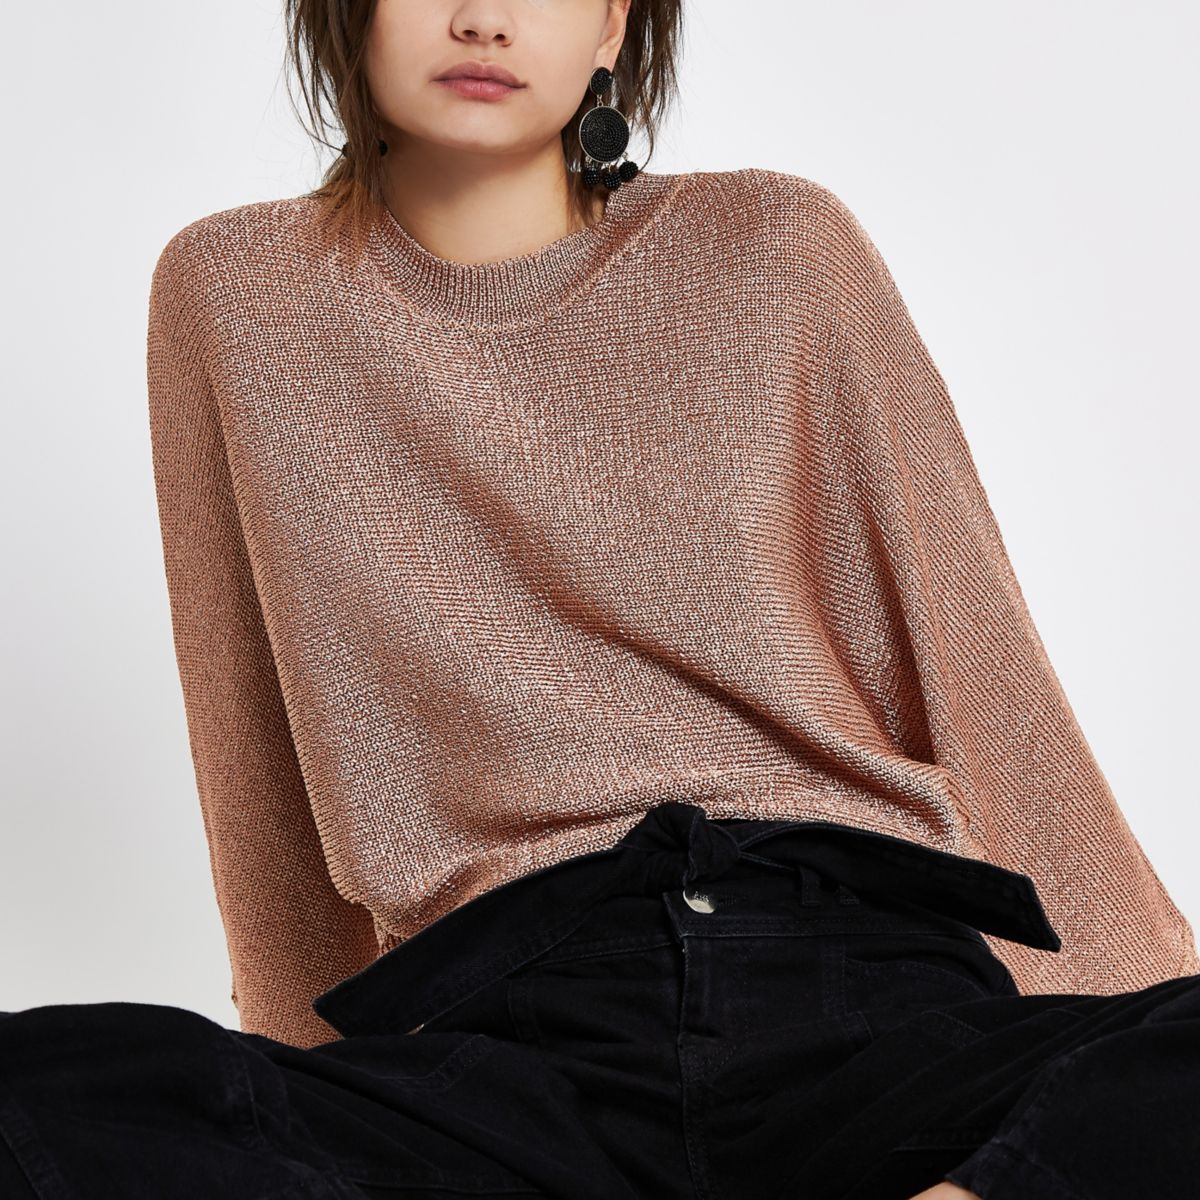 Rose gold metallic knit sweater